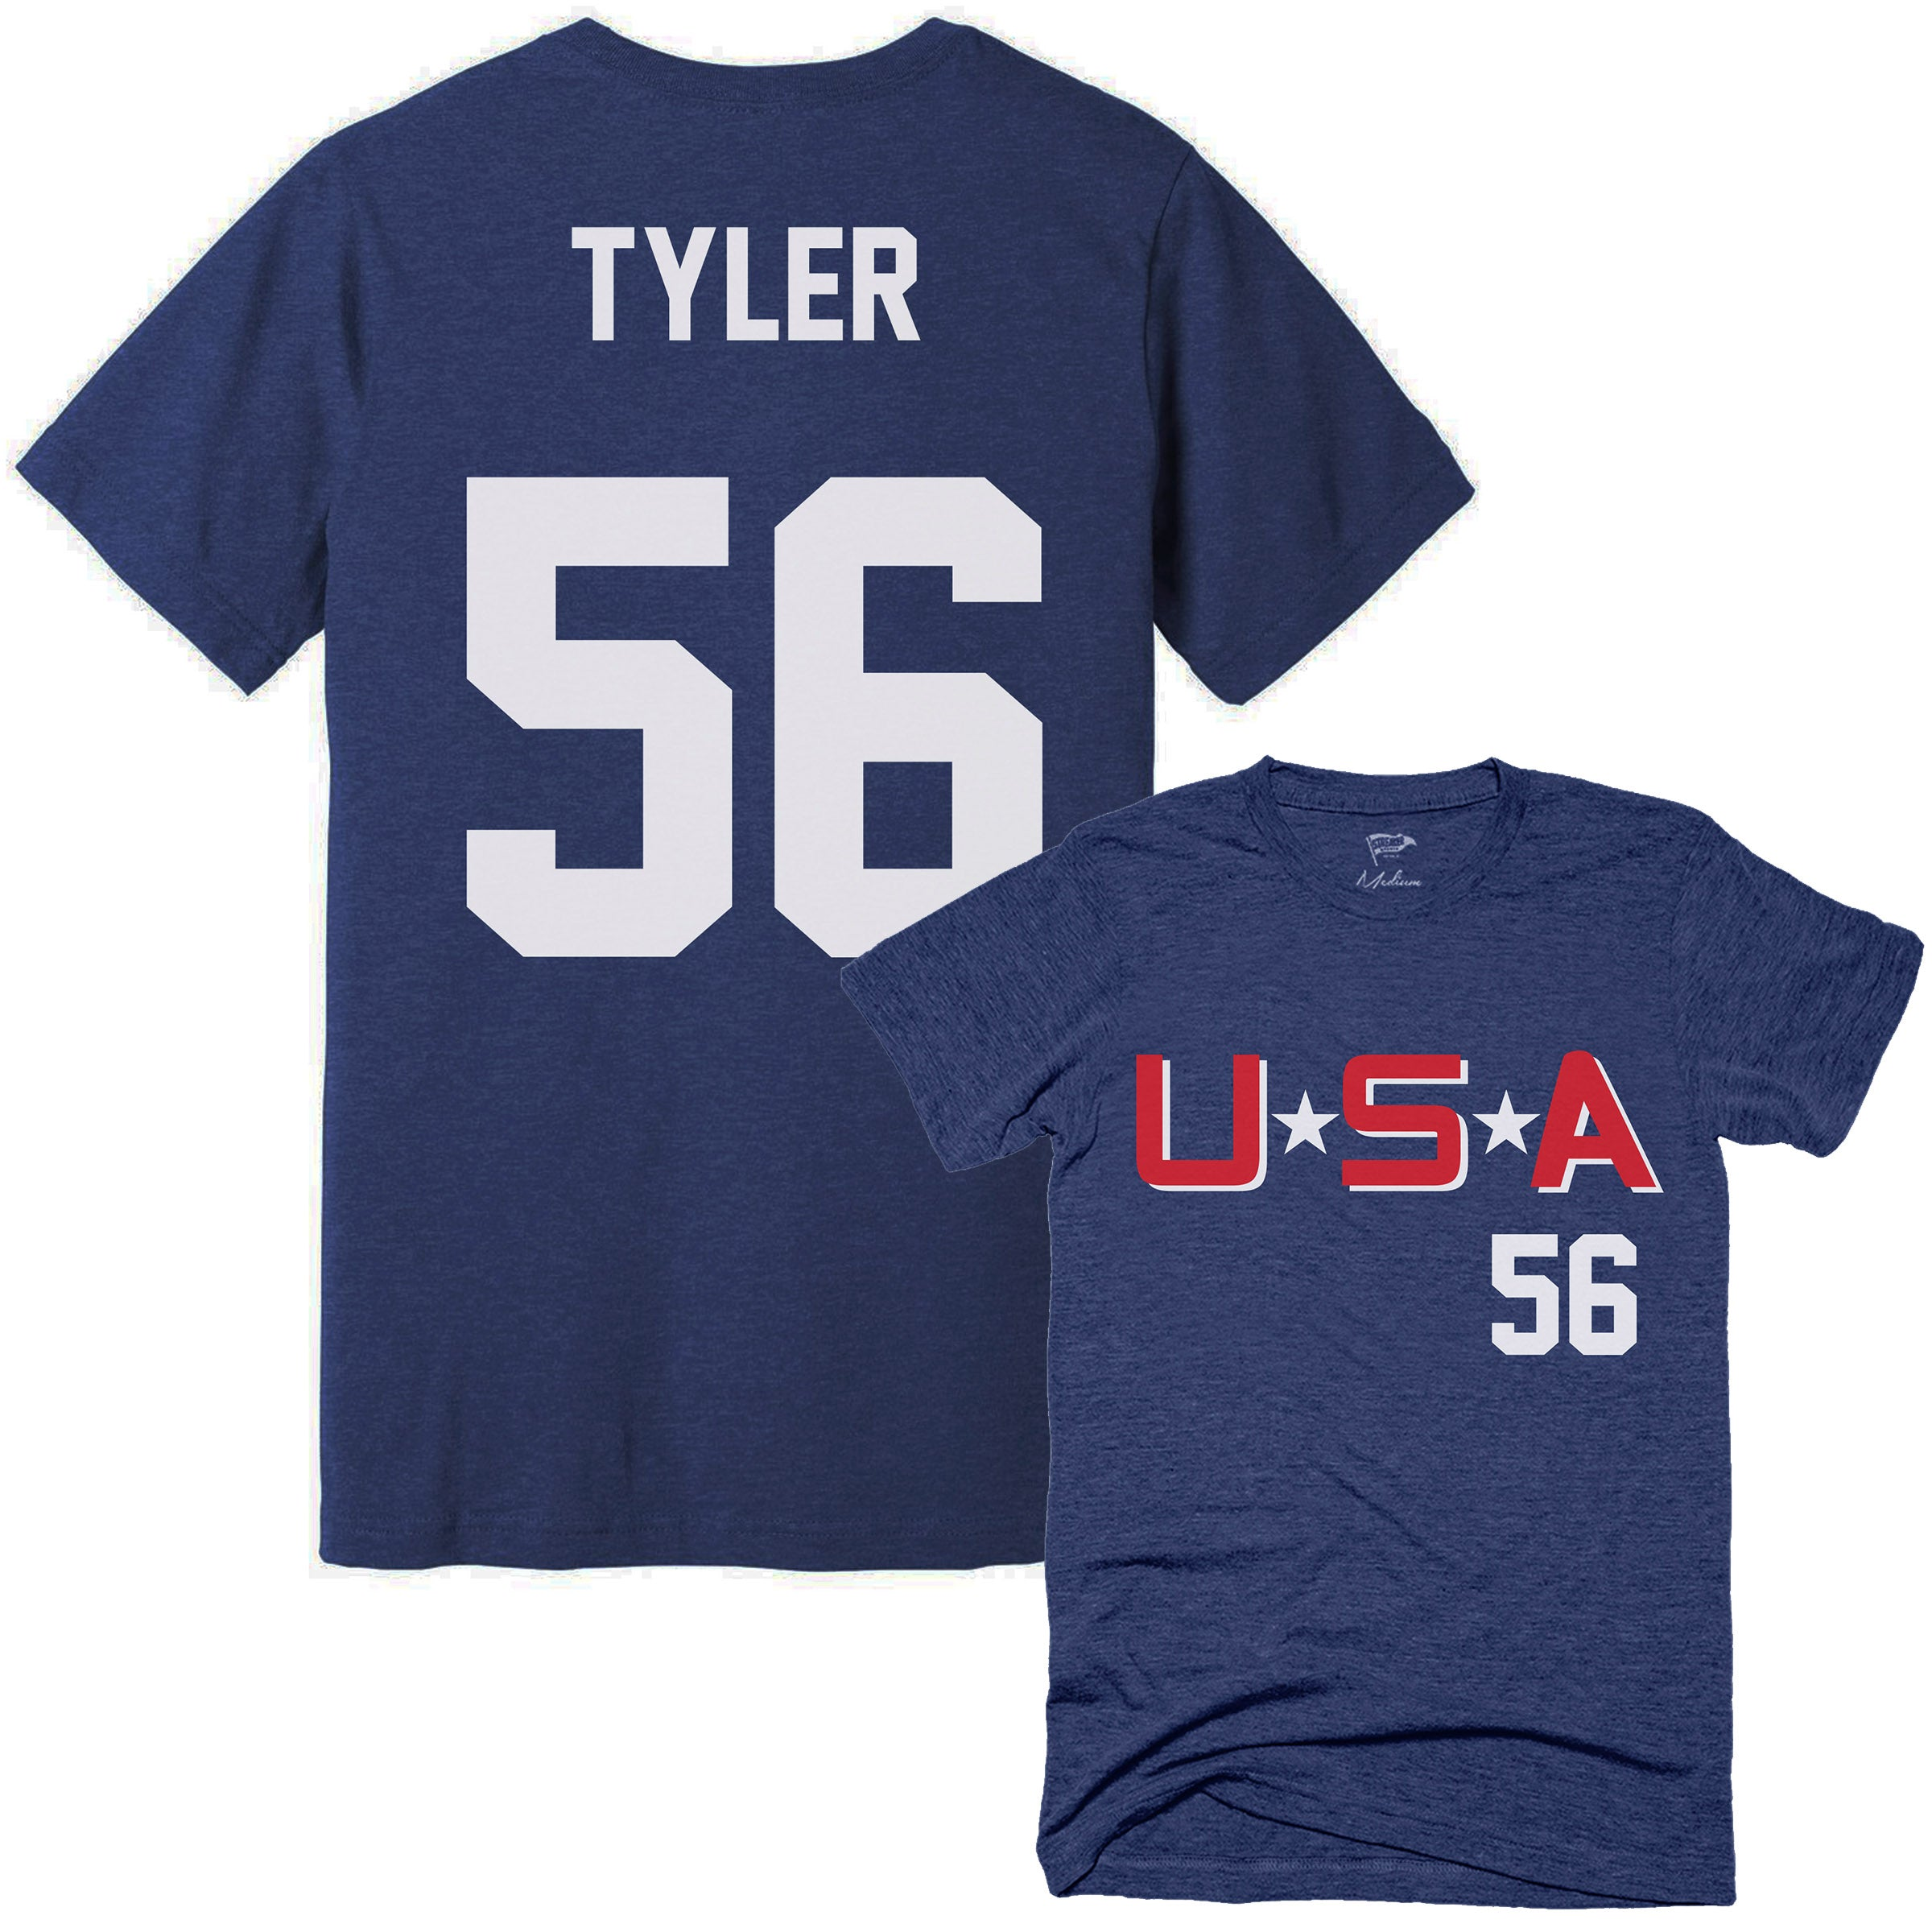 D2 Mighty Ducks Russ Tyler Jersey Tee - Streaker Sports